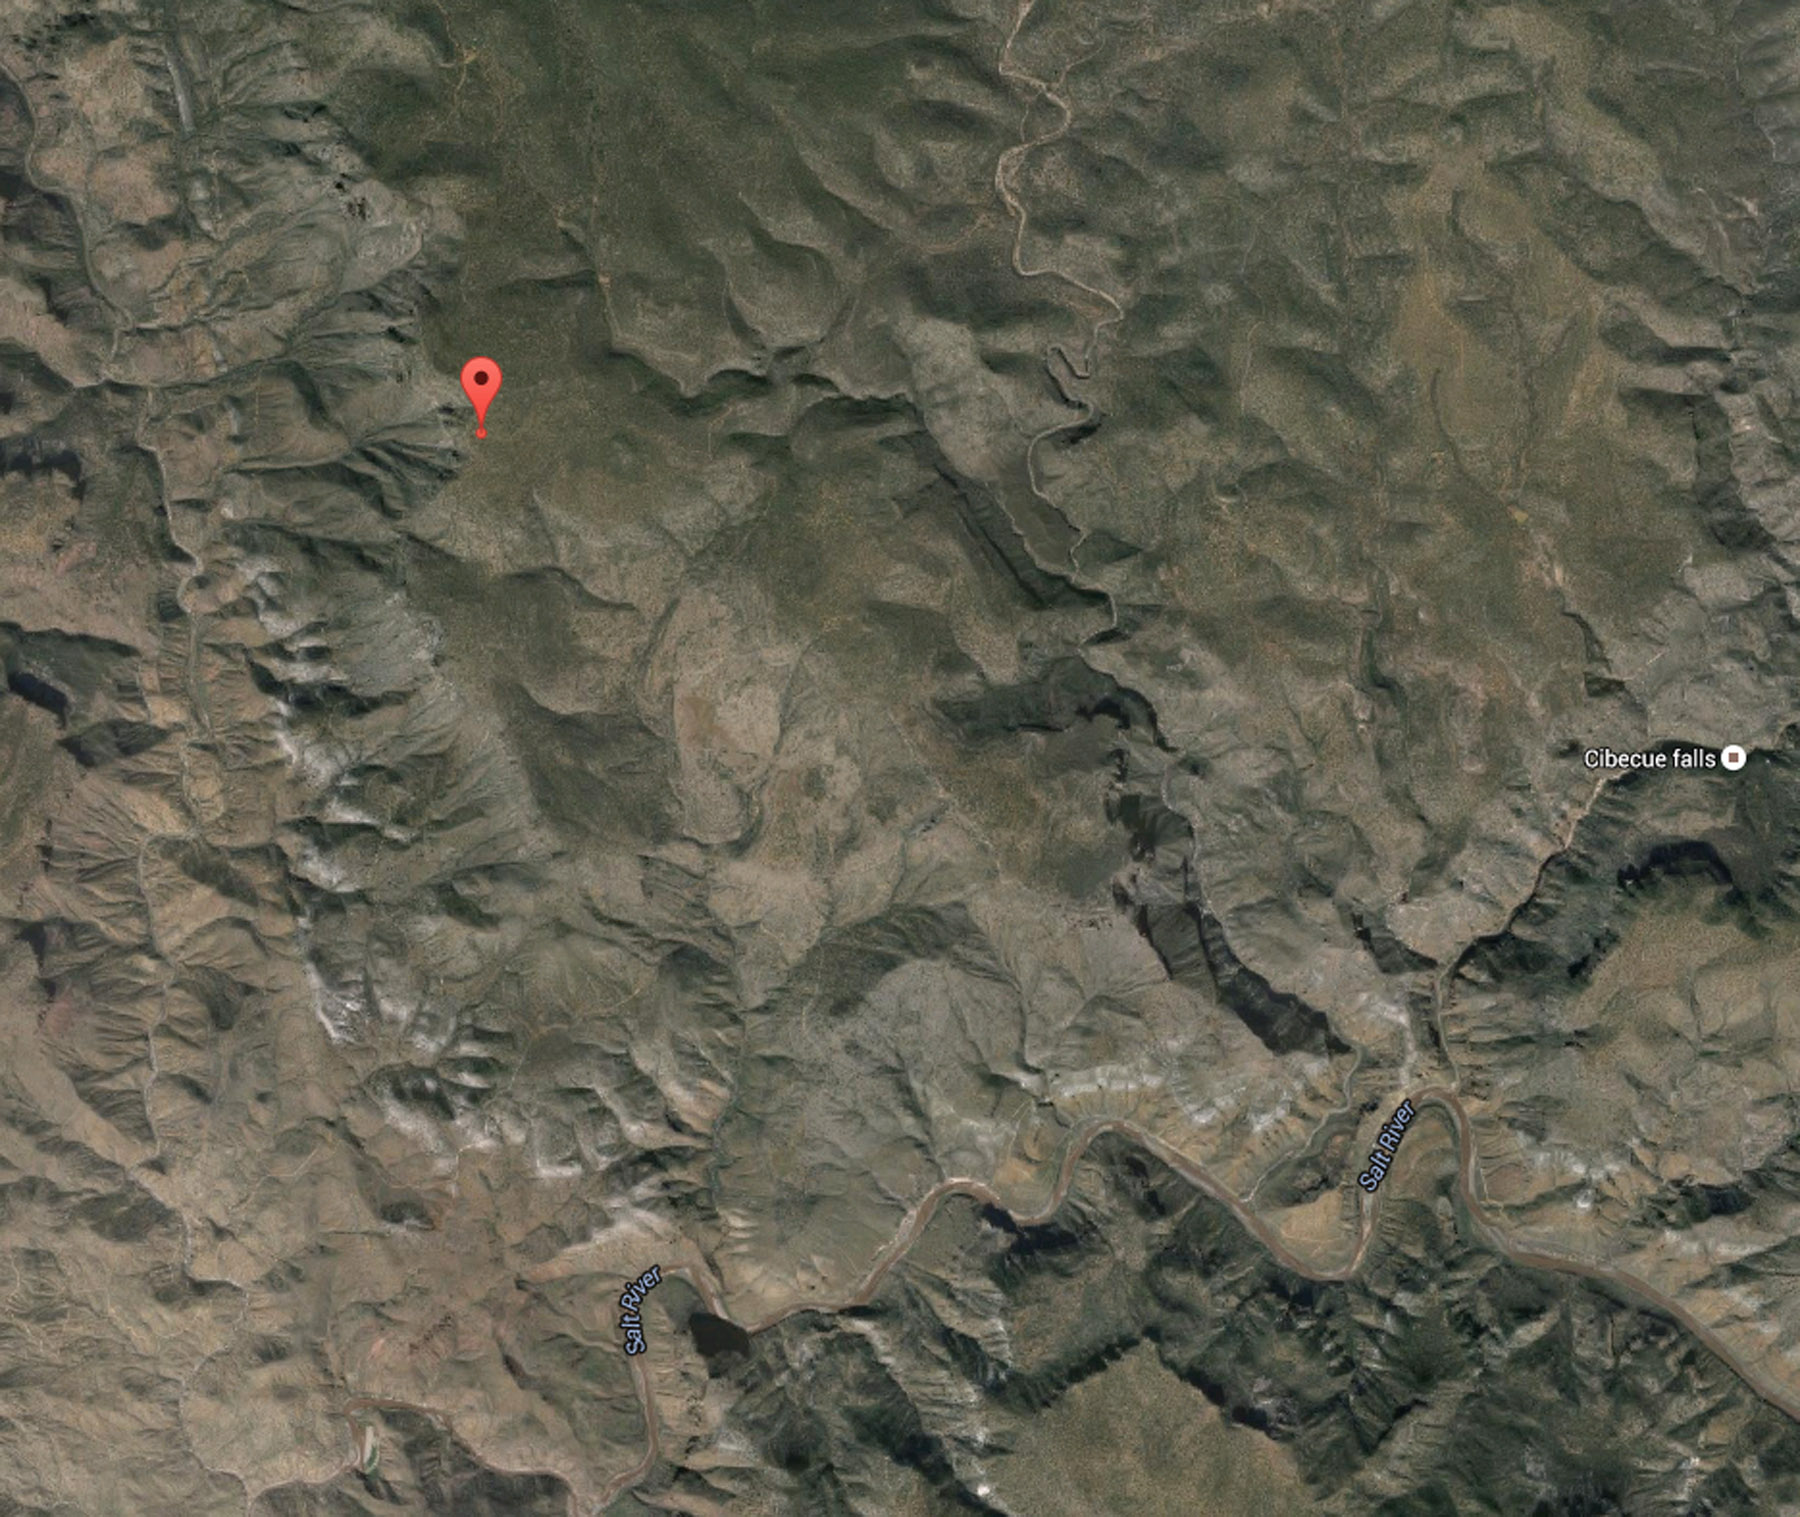 Area of possible strewnfield on Apache territory (west of Canyon Creek, north of salt River) with fall location of the 29.35 g mass